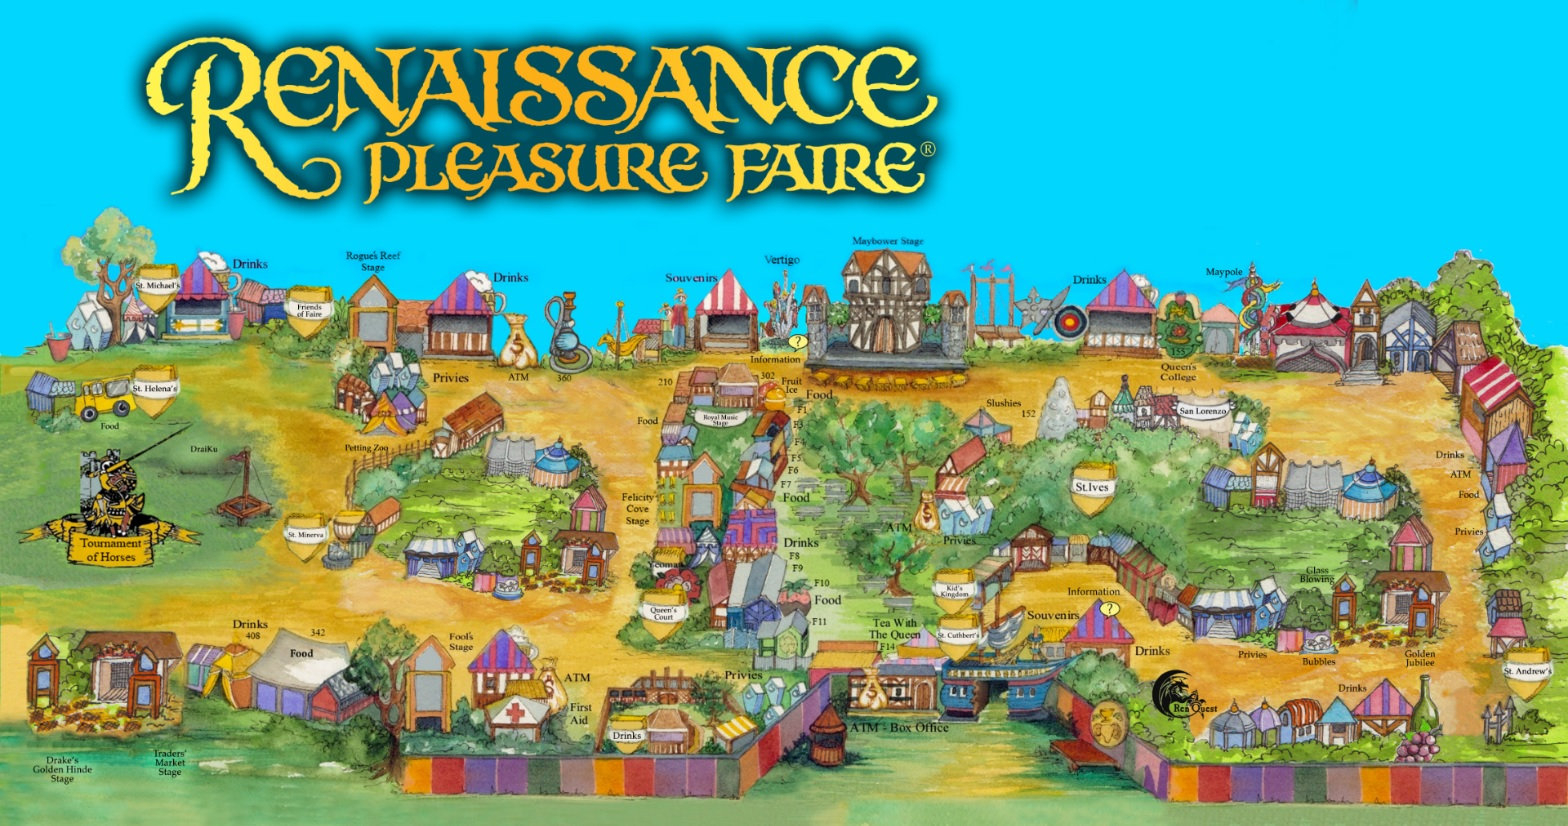 Irwindale California Map.Map Of The Faire The Original Renaissance Pleasure Faire